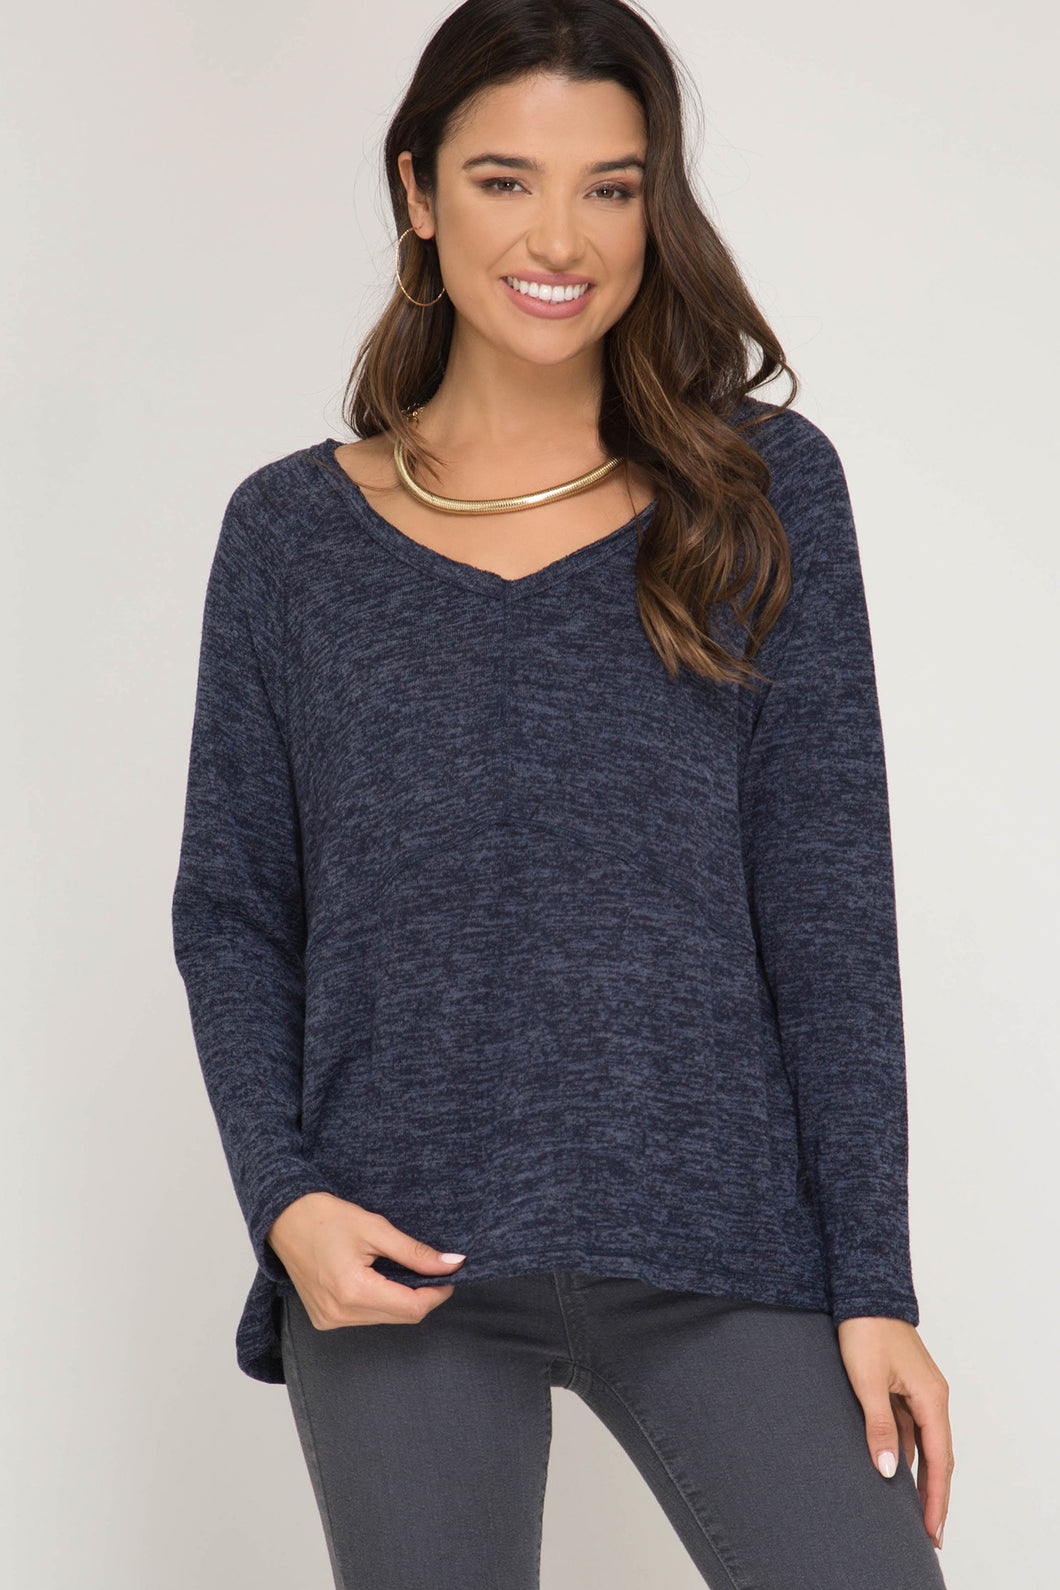 Brushed Knit Top - Various Colors